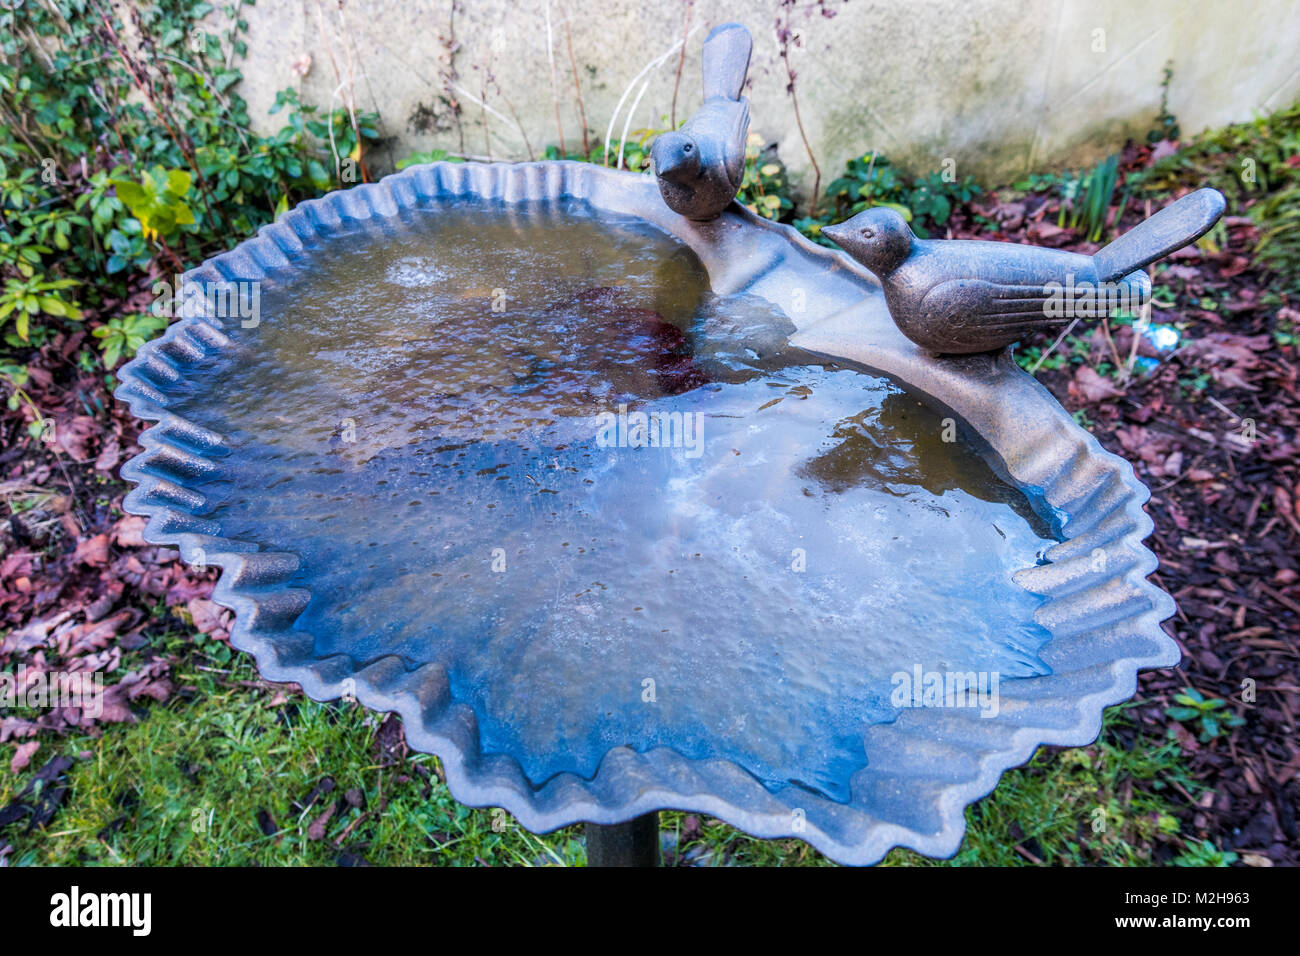 A shell-shaped ornamental bird bath, with a pair of birds on the edge, and the water frozen over in winter. Outside - Stock Image